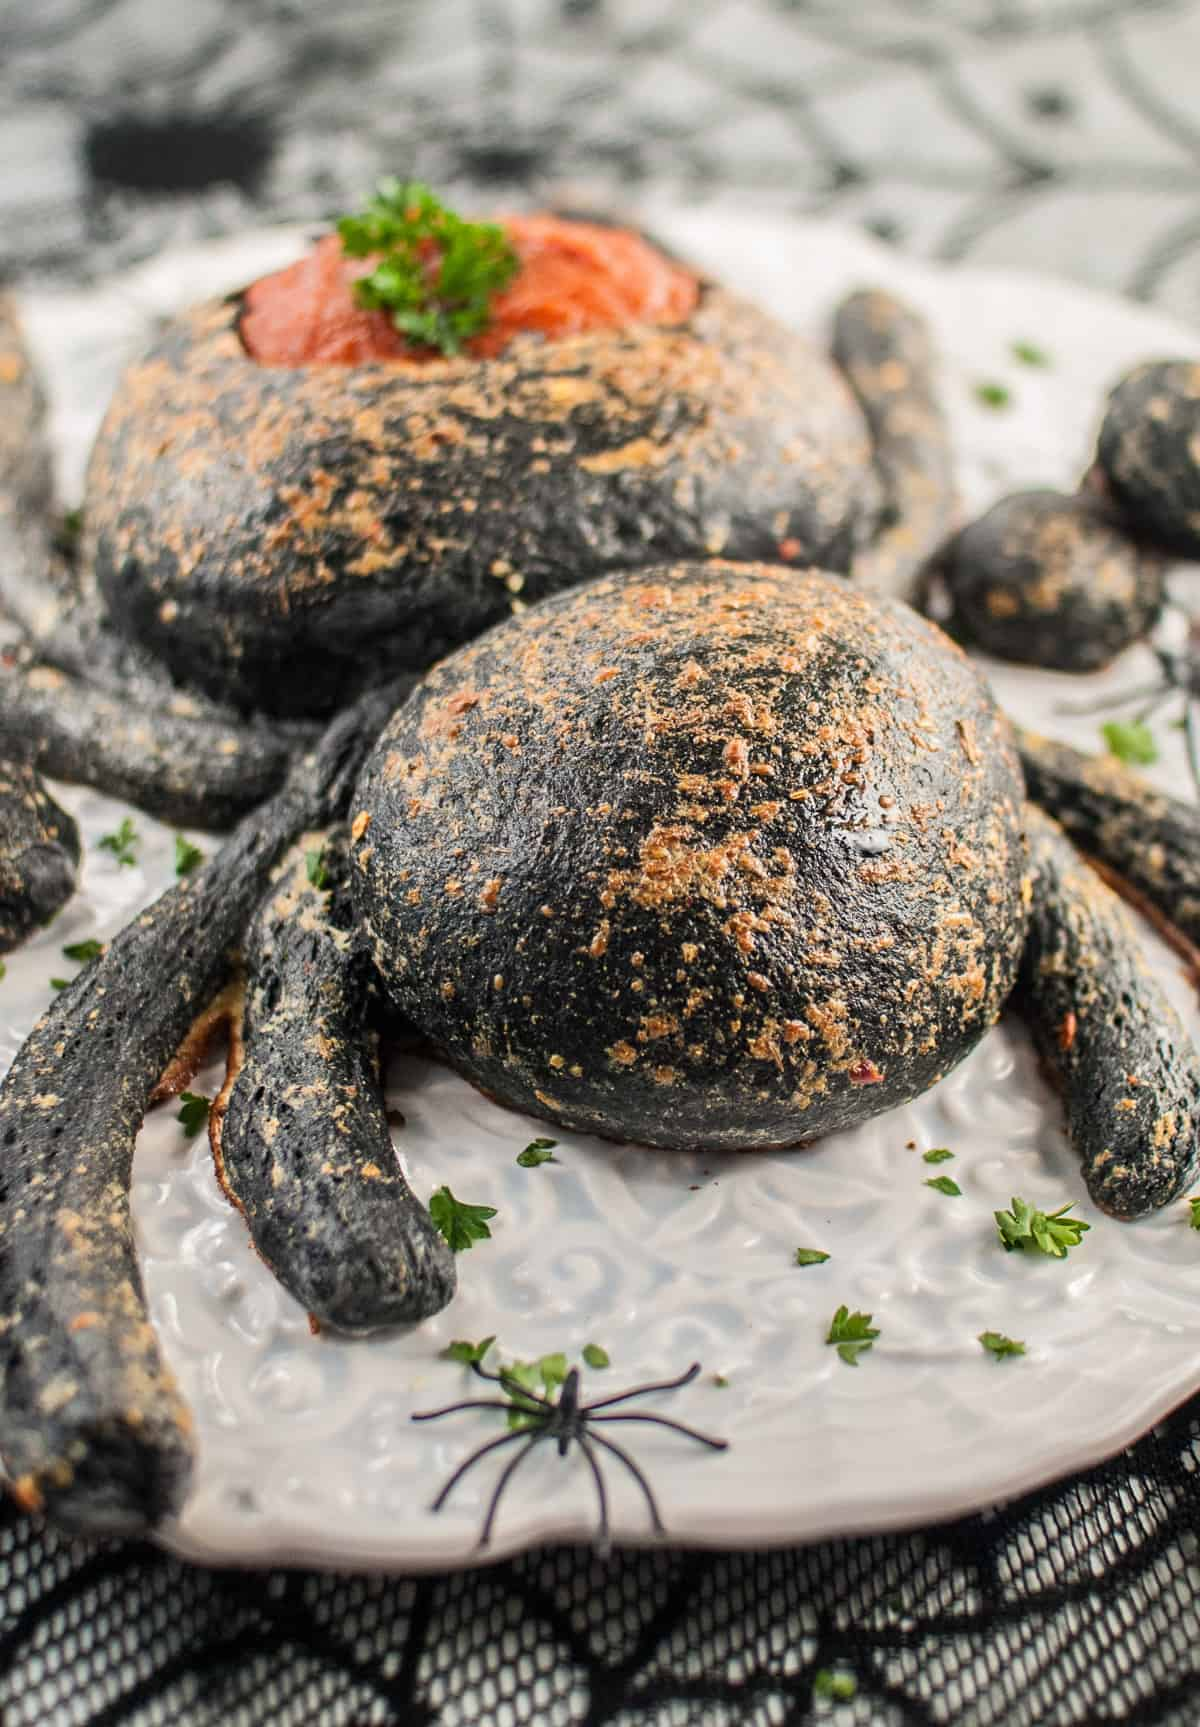 A Halloween spider bread bowl appetizer on a white plate.